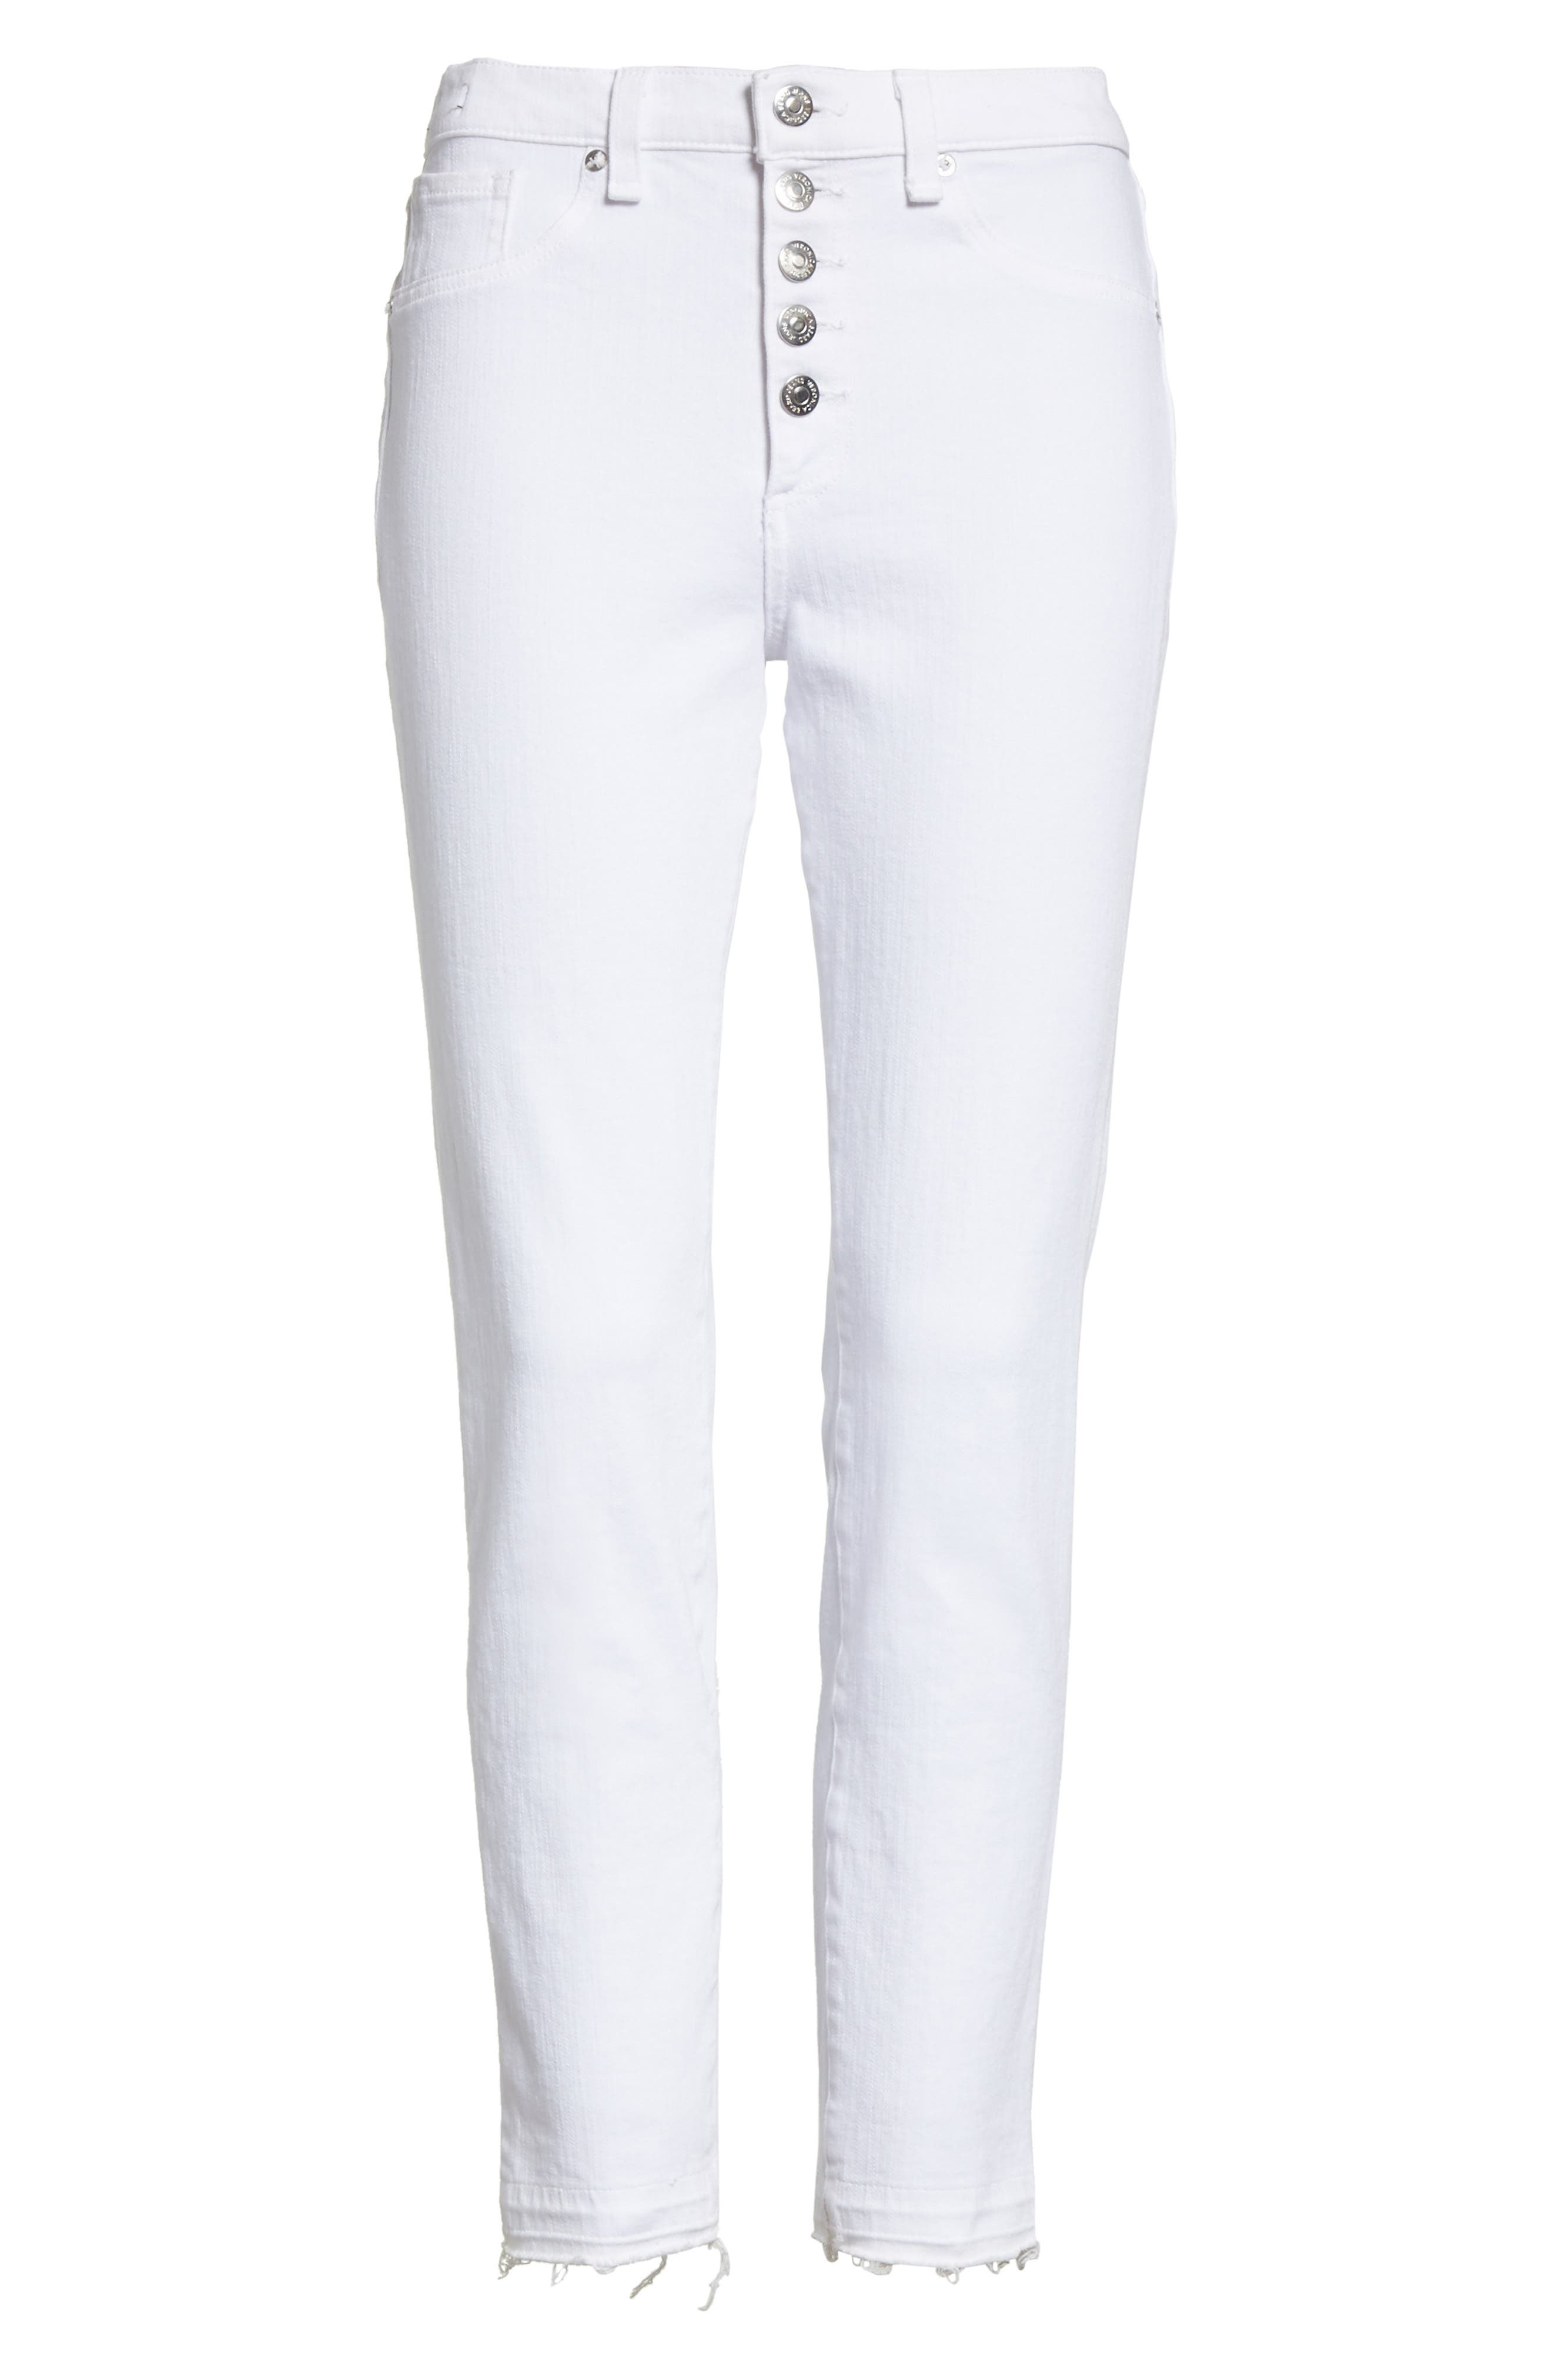 Debbie Frayed Crop Skinny Jeans,                             Alternate thumbnail 6, color,                             White